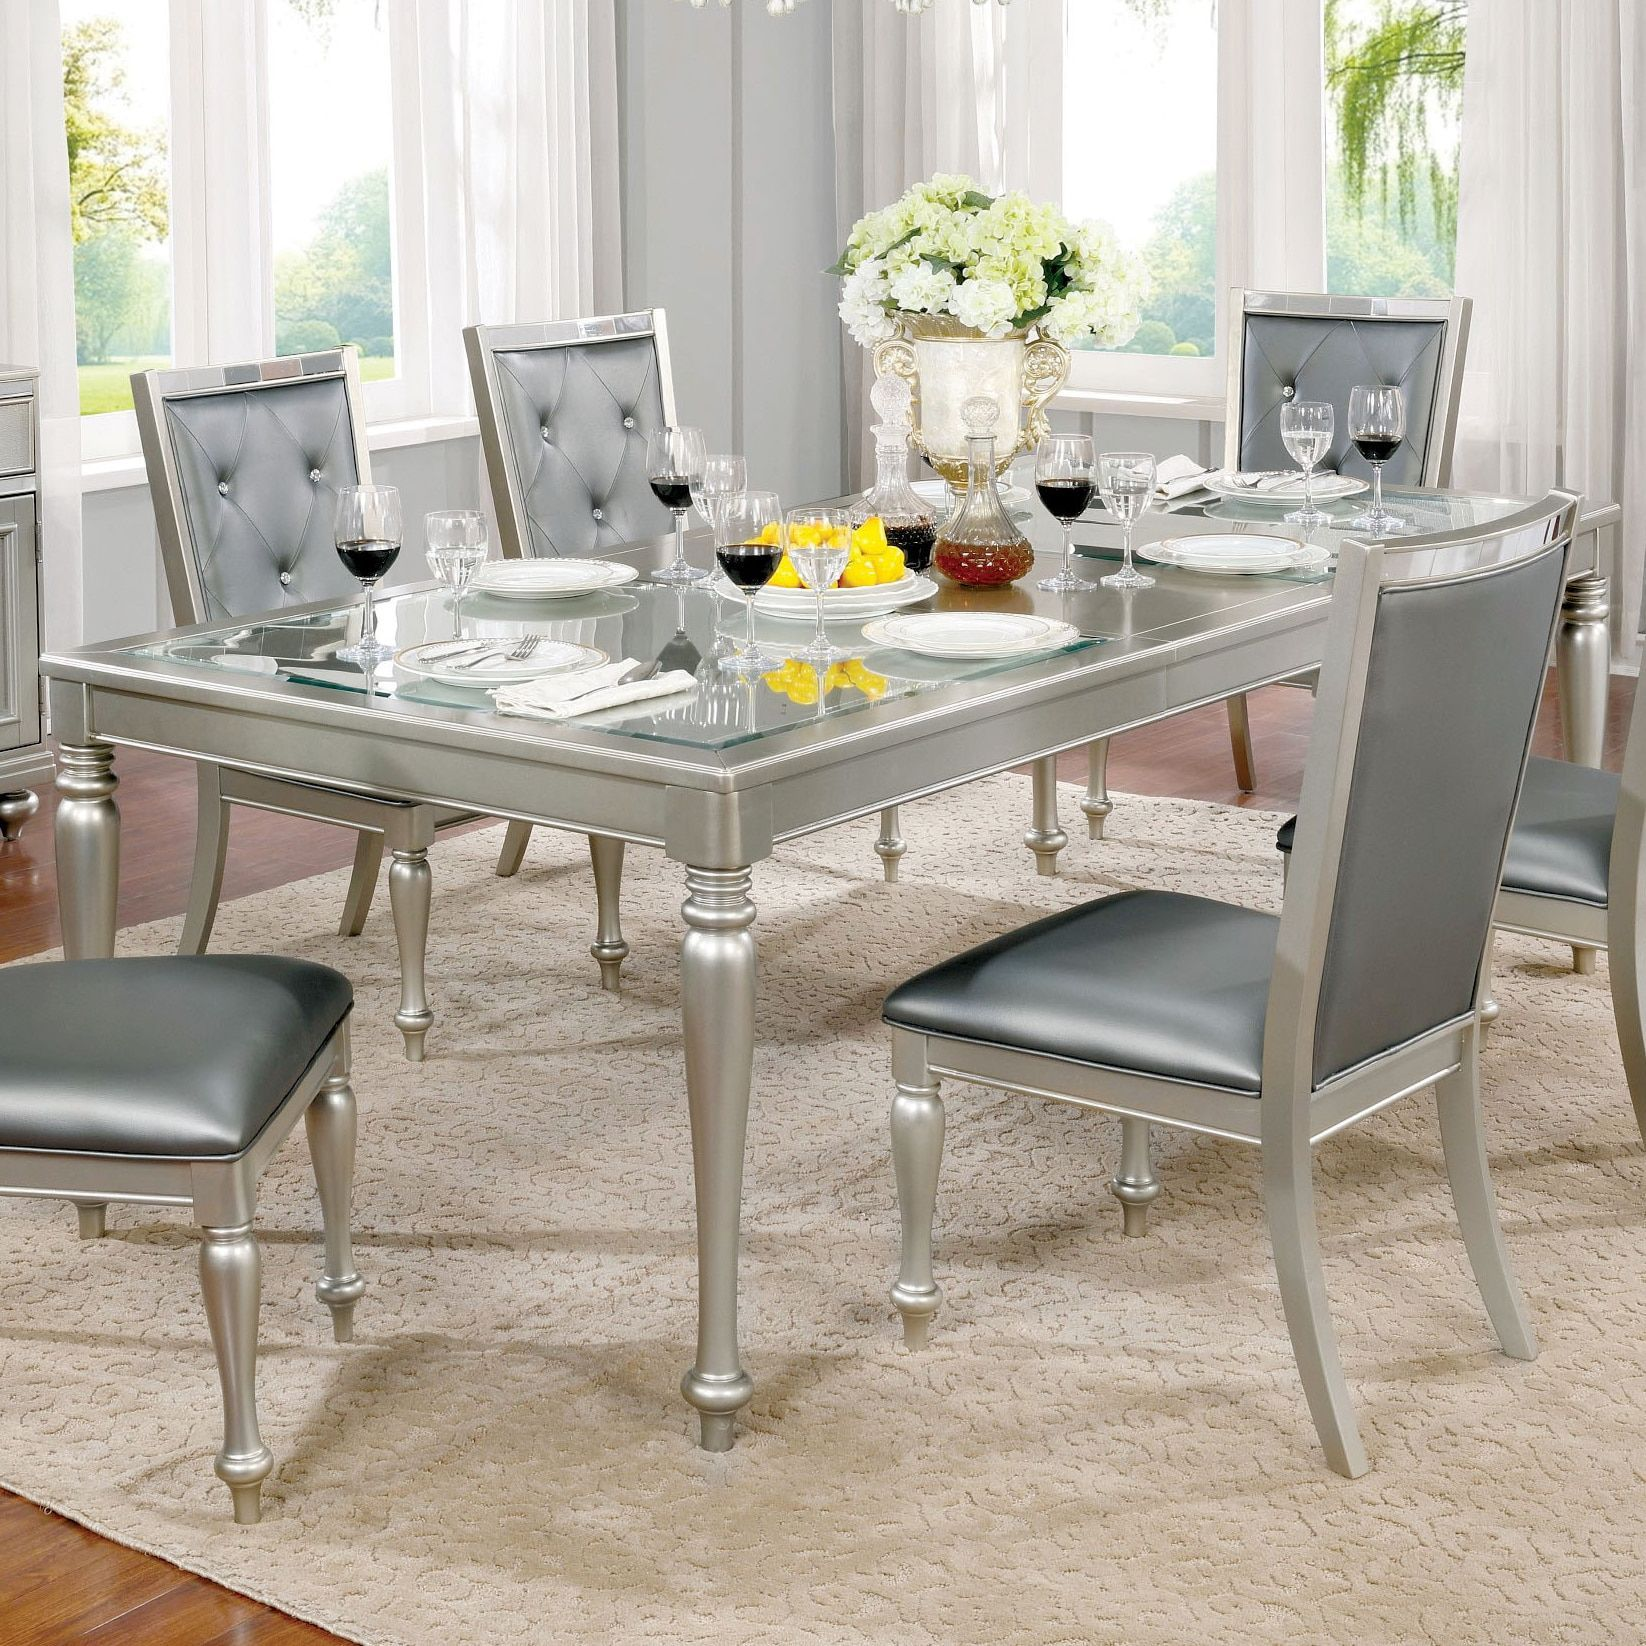 Furniture Of America Glendel Glam Embossed Glass Top Silver Grey Dining Table With 18 Inch